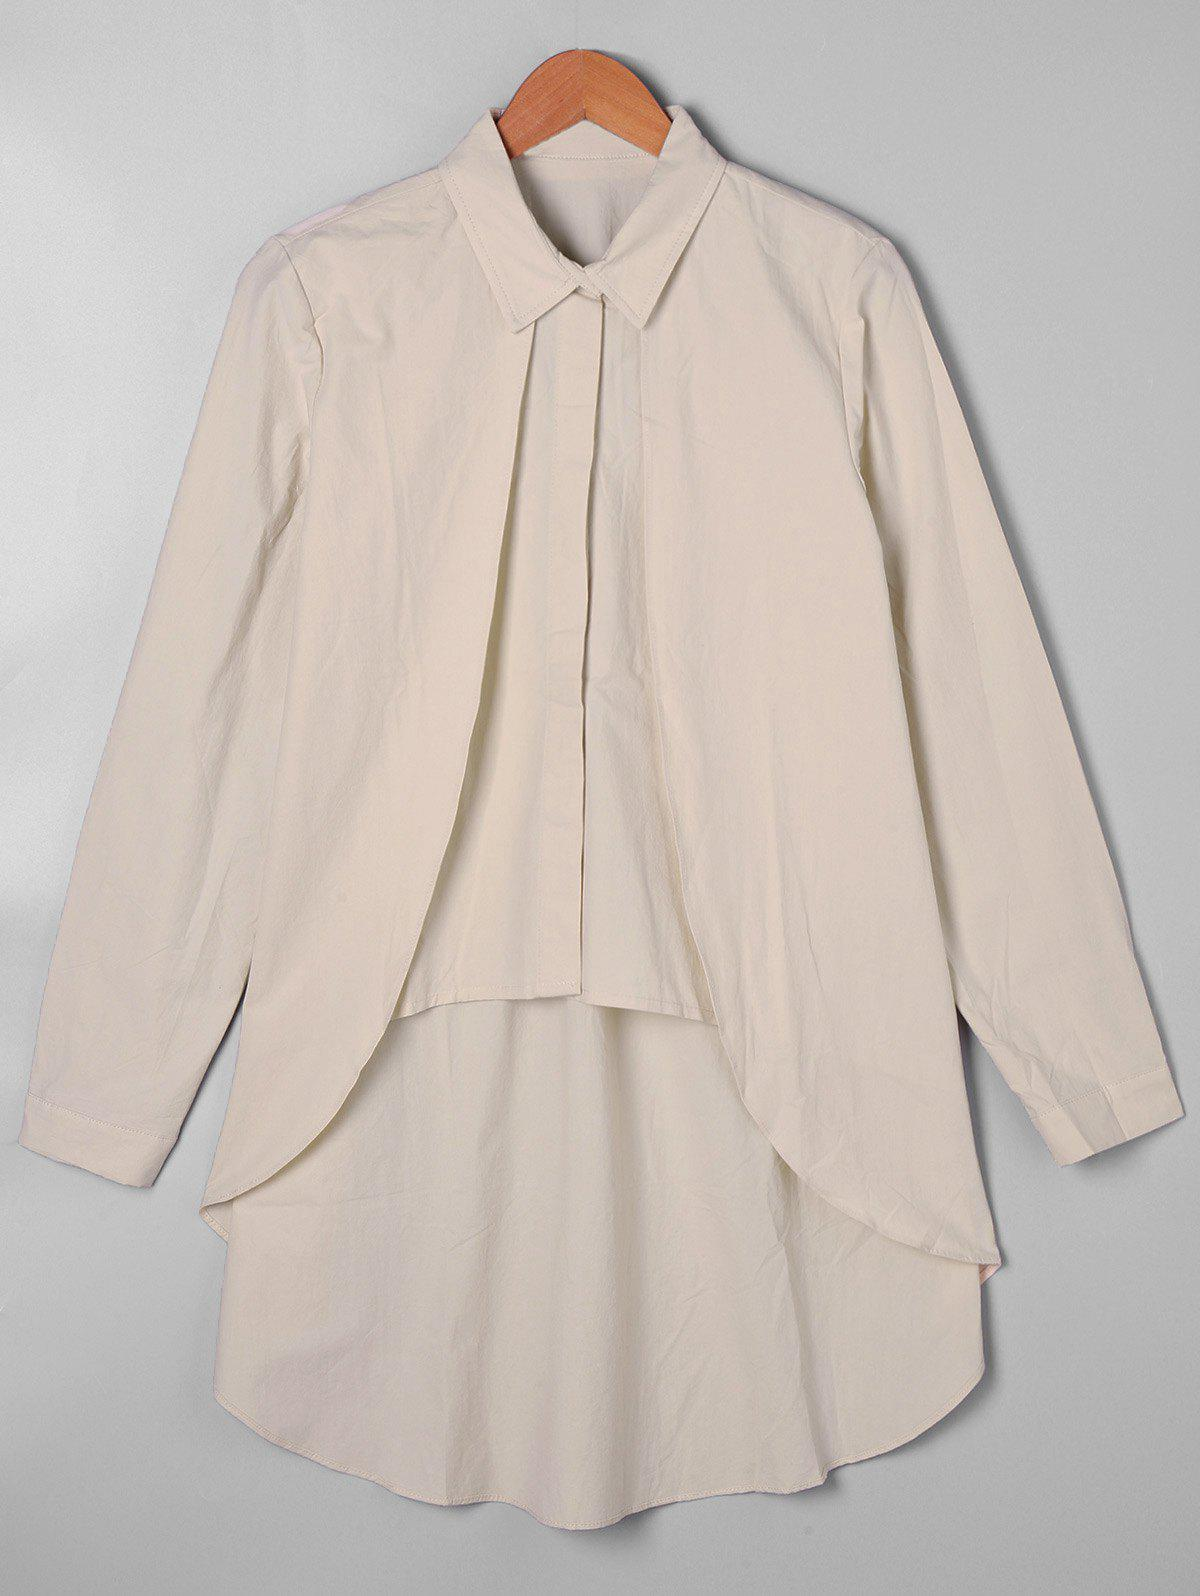 Overlay High Low Hem Shirt - APRICOT ONE SIZE